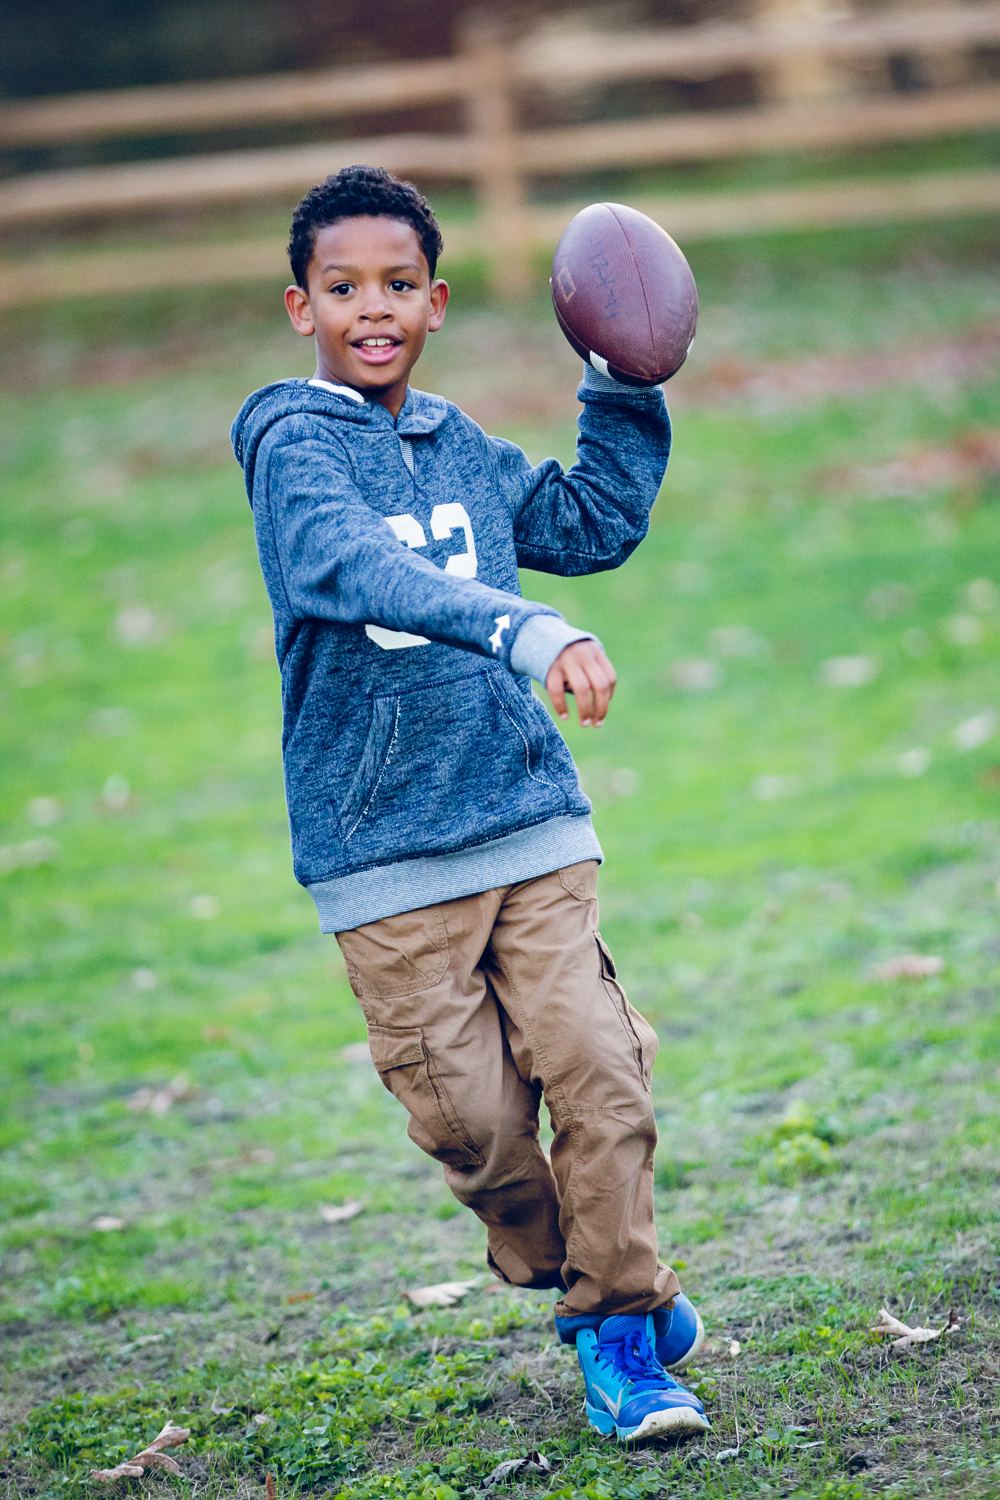 Photo of a little boy throwing a football